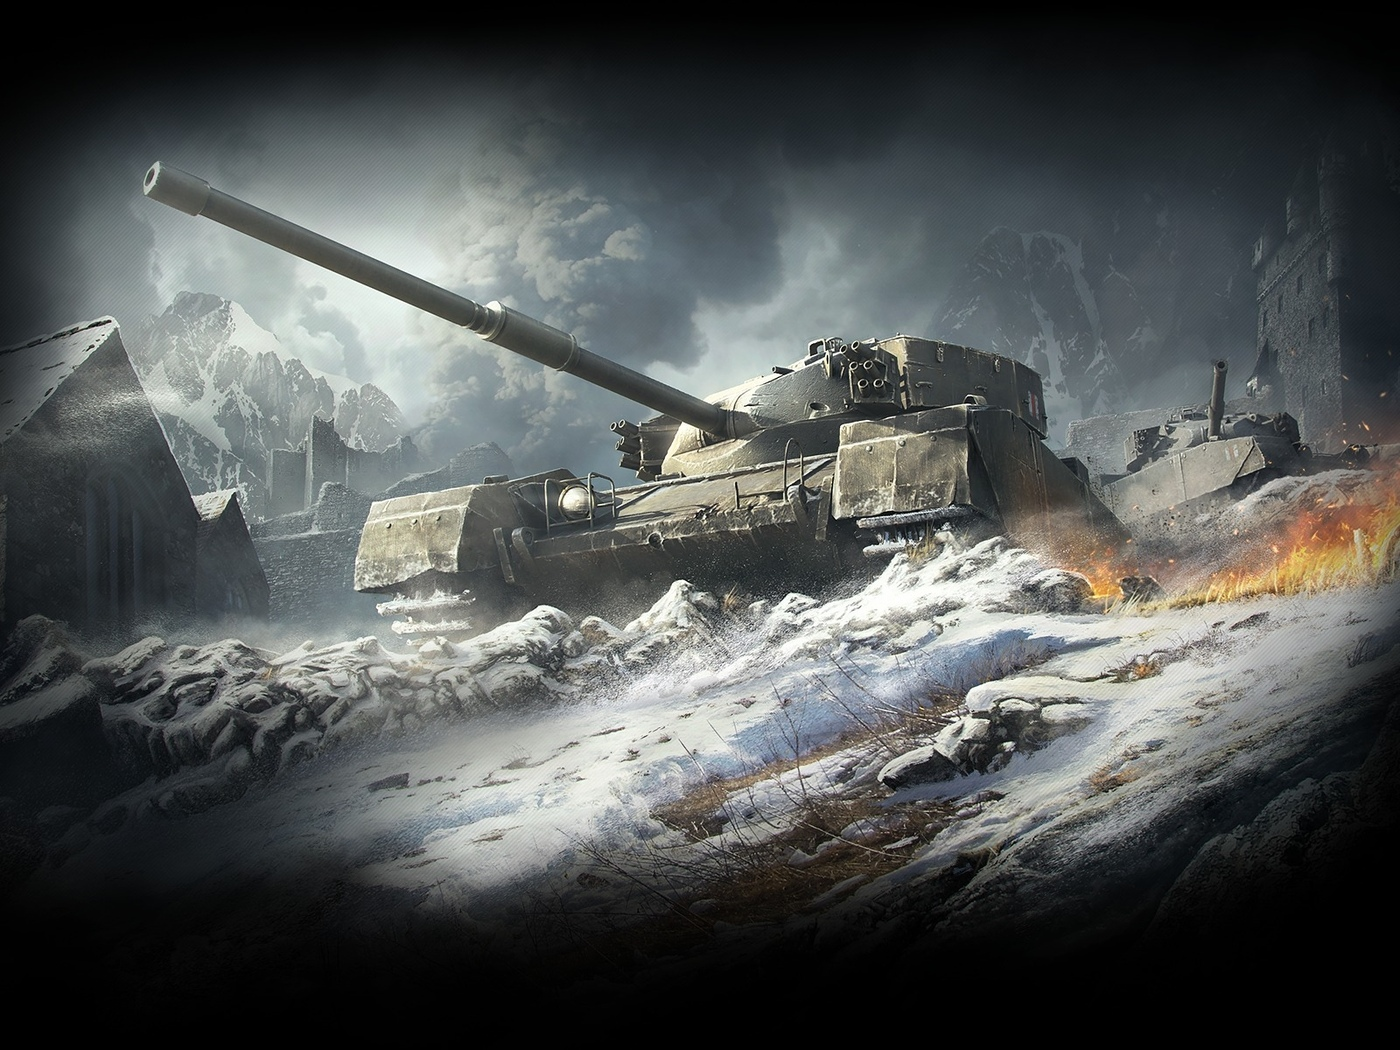 world of tanks, wargaming net, wot, мир танков, wg, fv4202